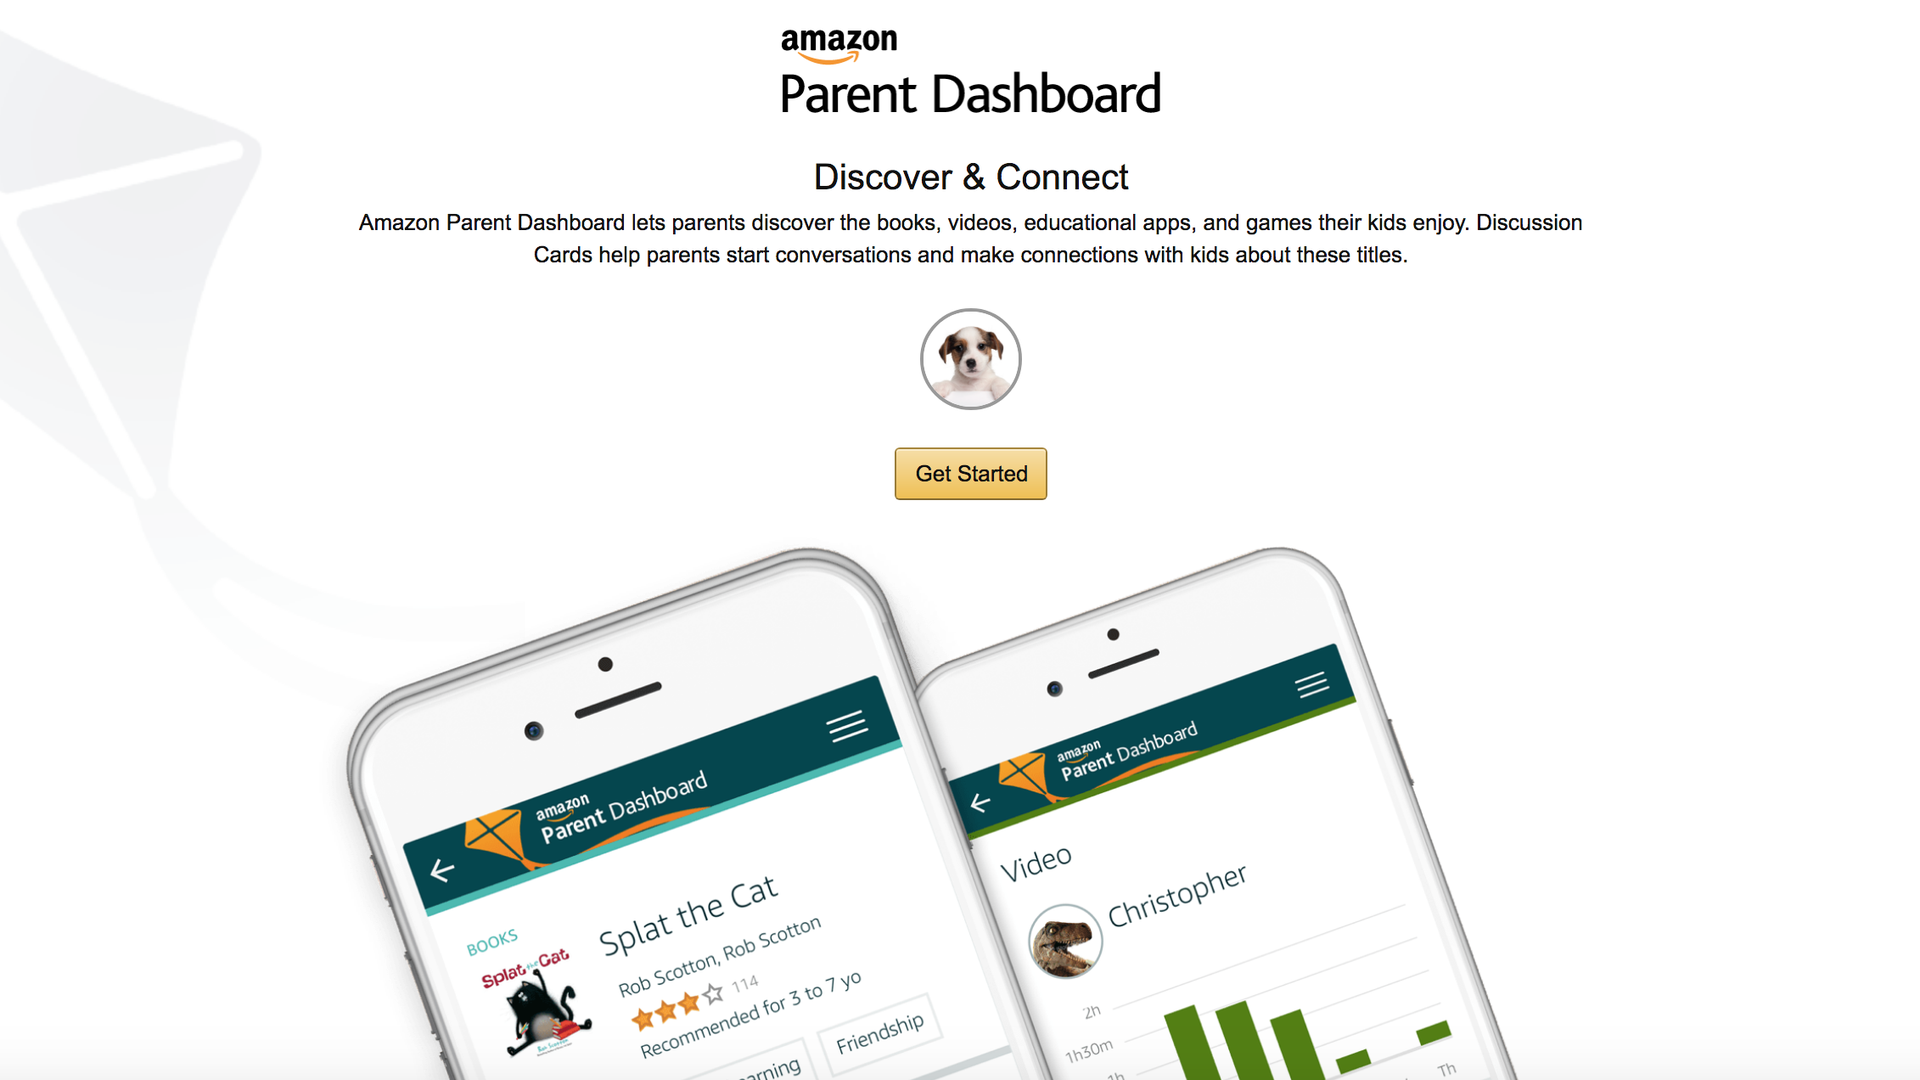 A screenshot of Amazon's new parental dashboard